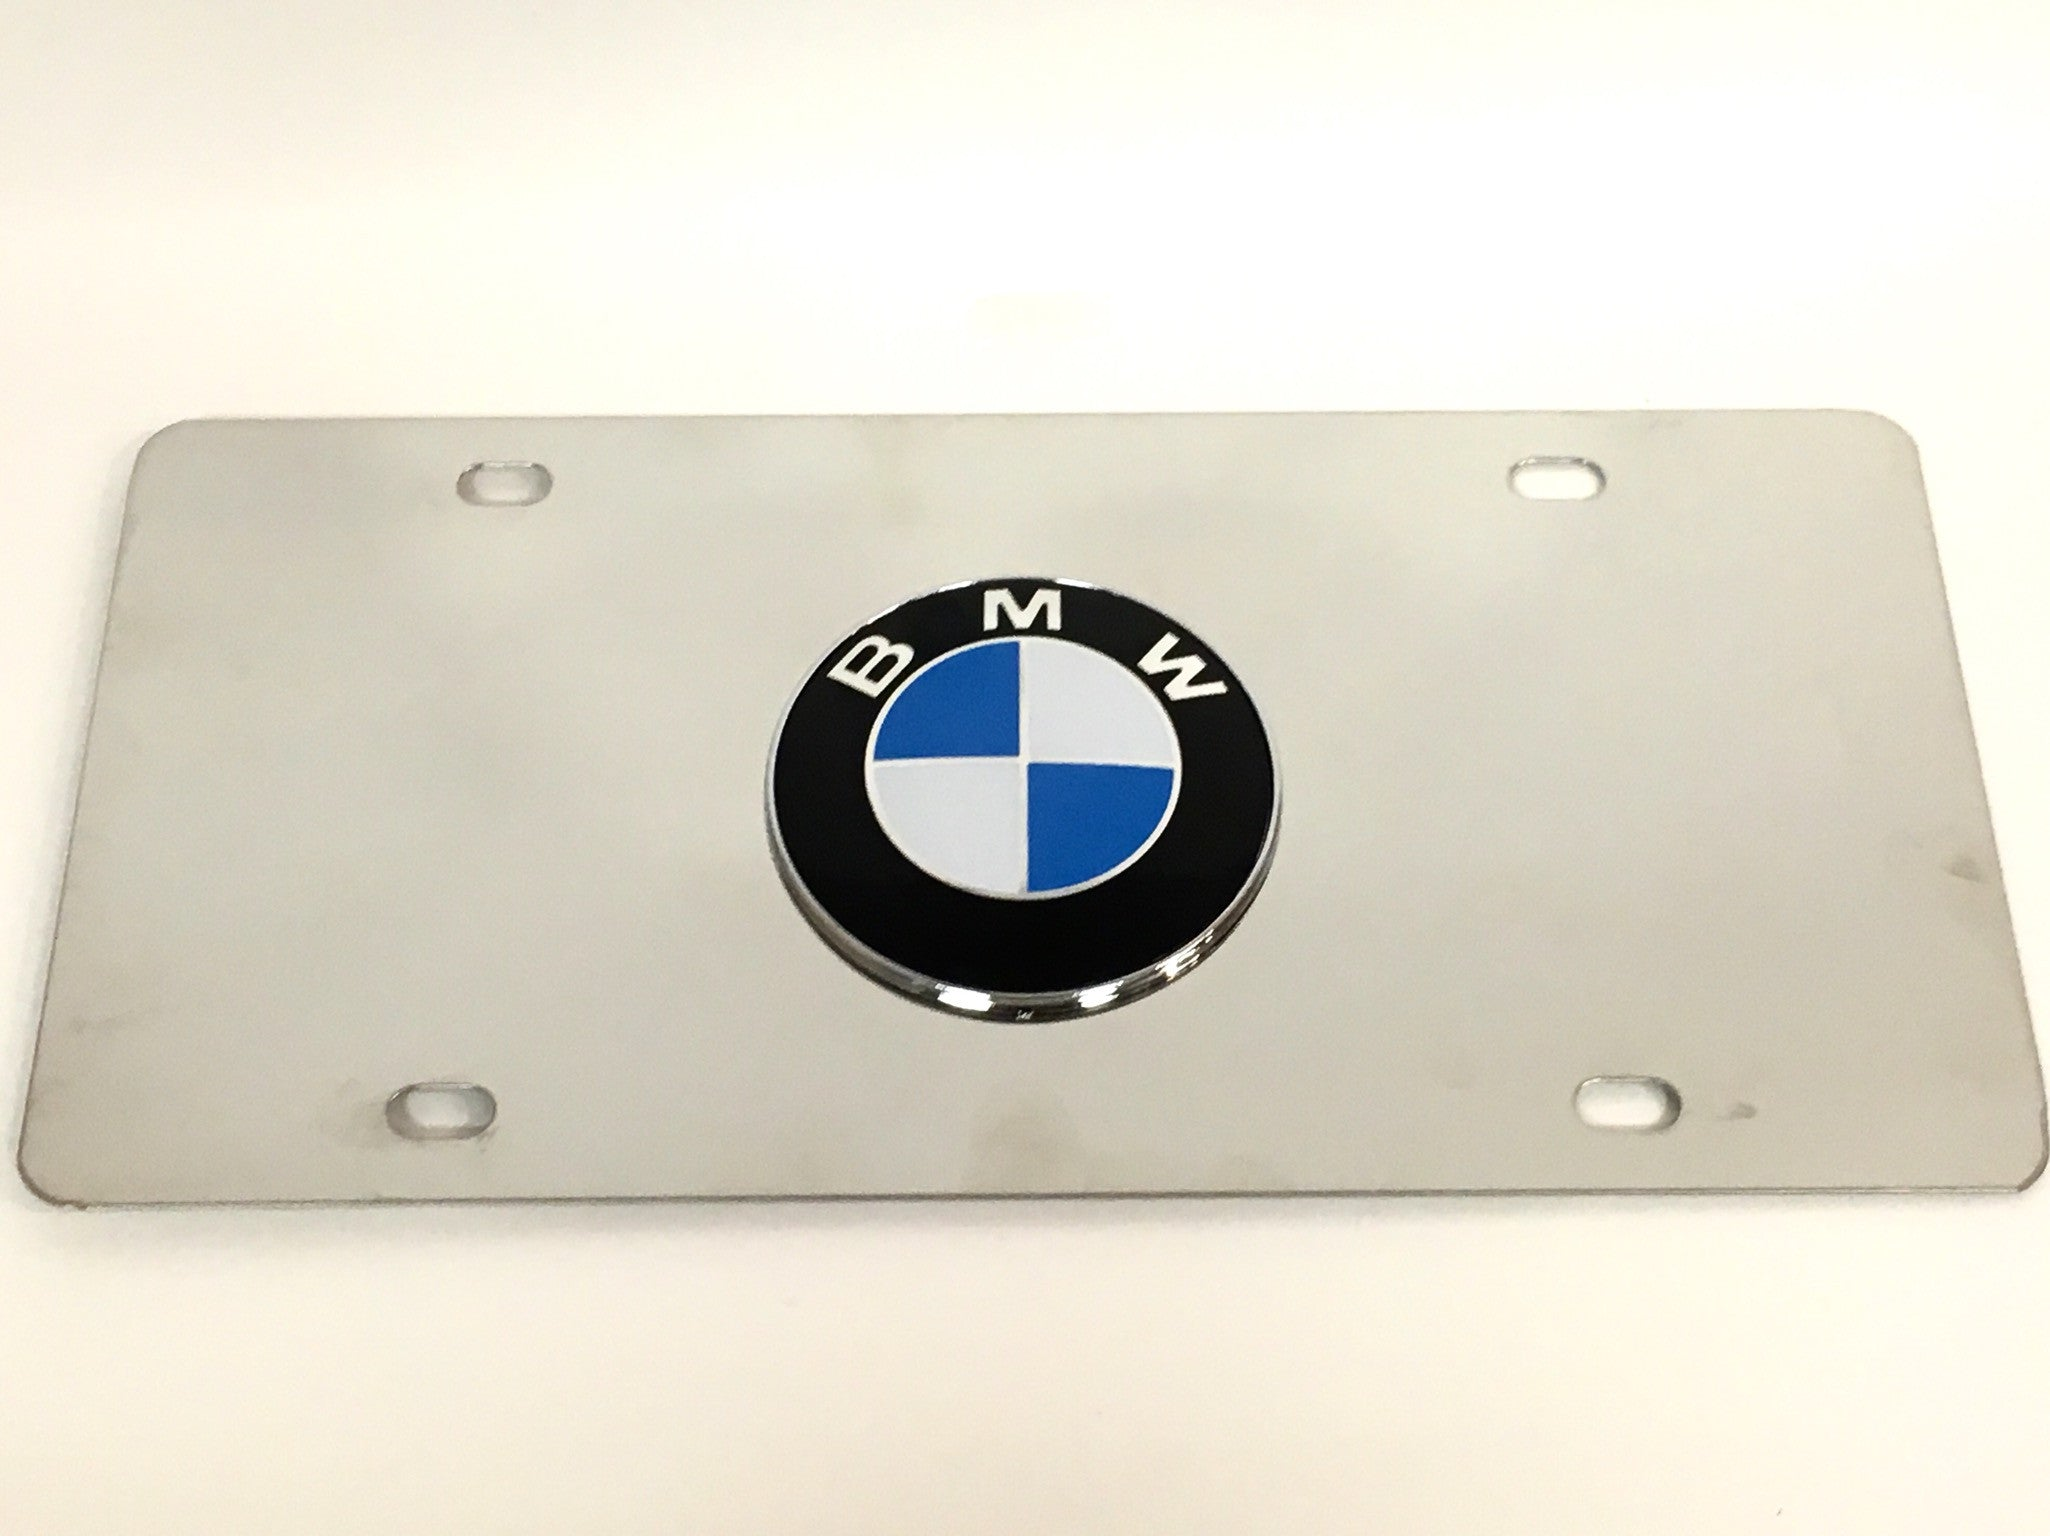 BMW Official Emblem Stainless Steel License Plate